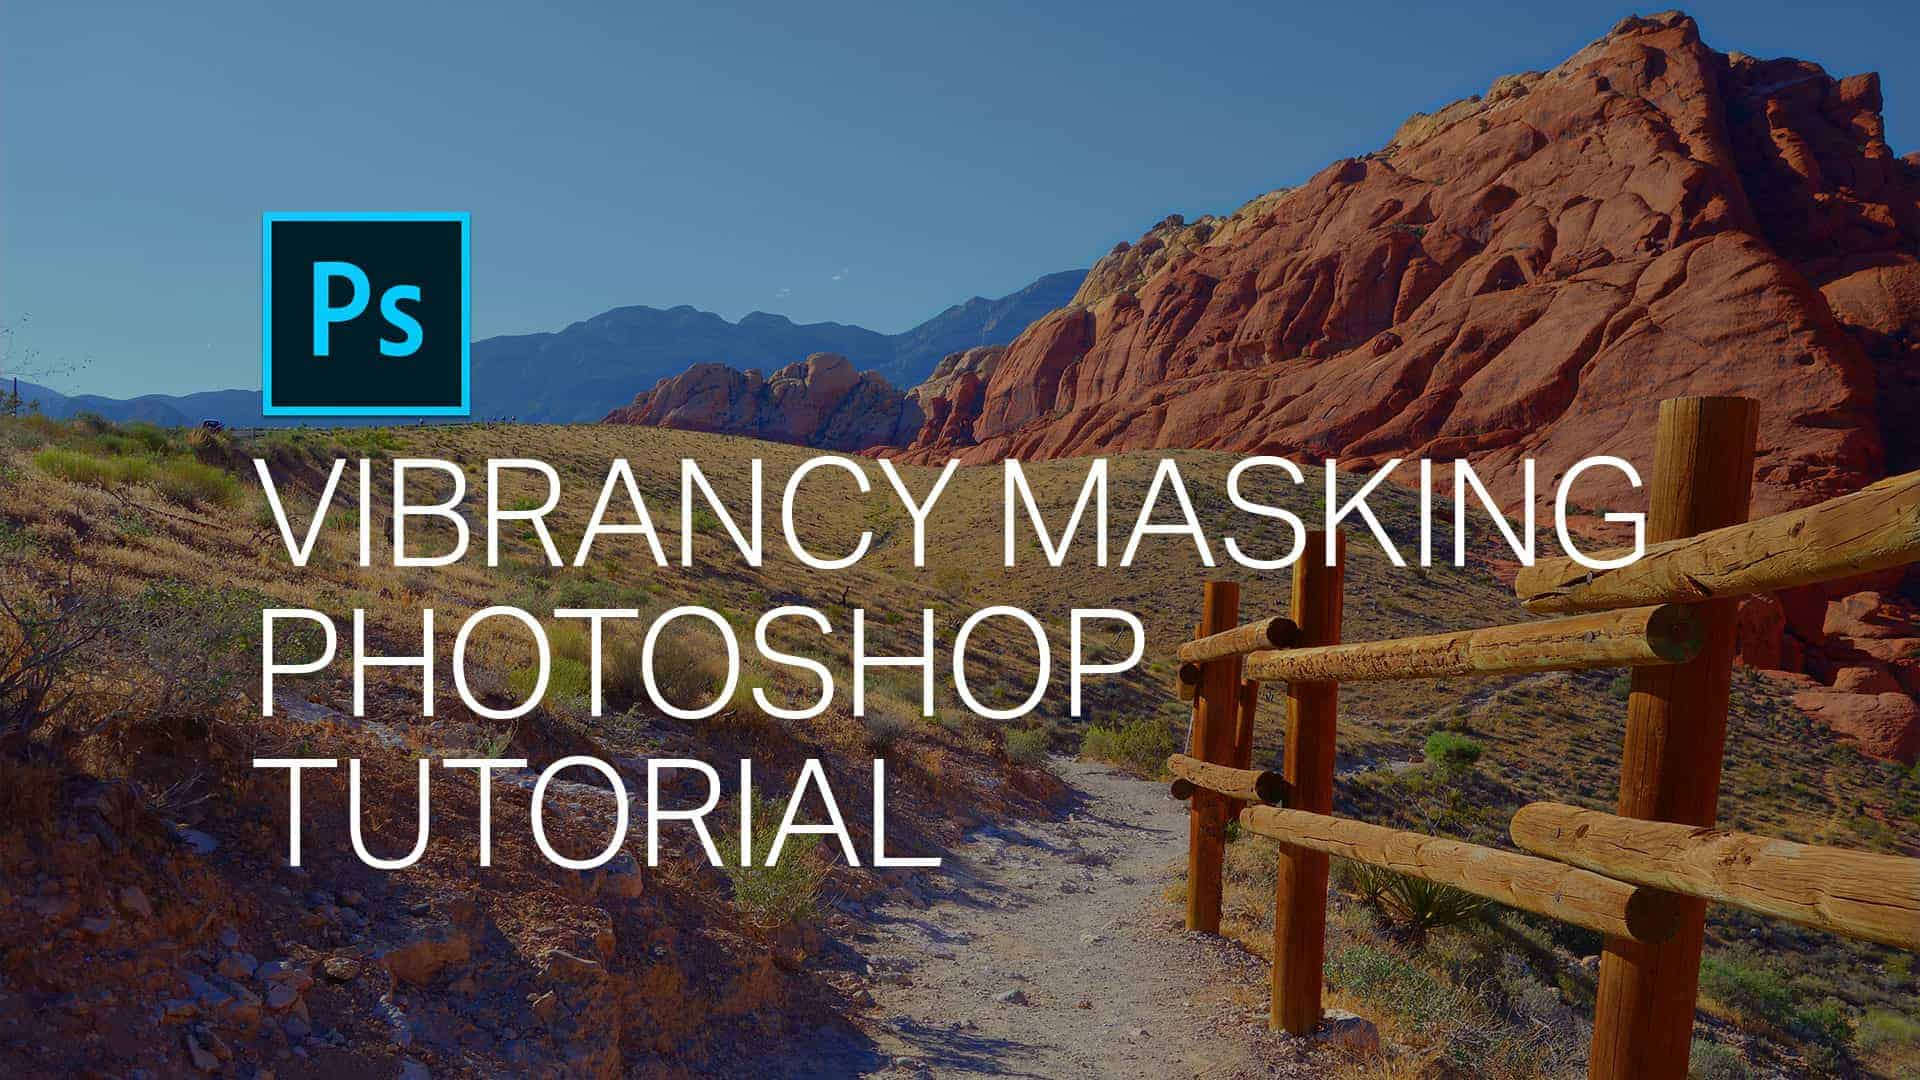 Vibrancy Masking - How to Get Ultra Vibrant Photos in Photoshop